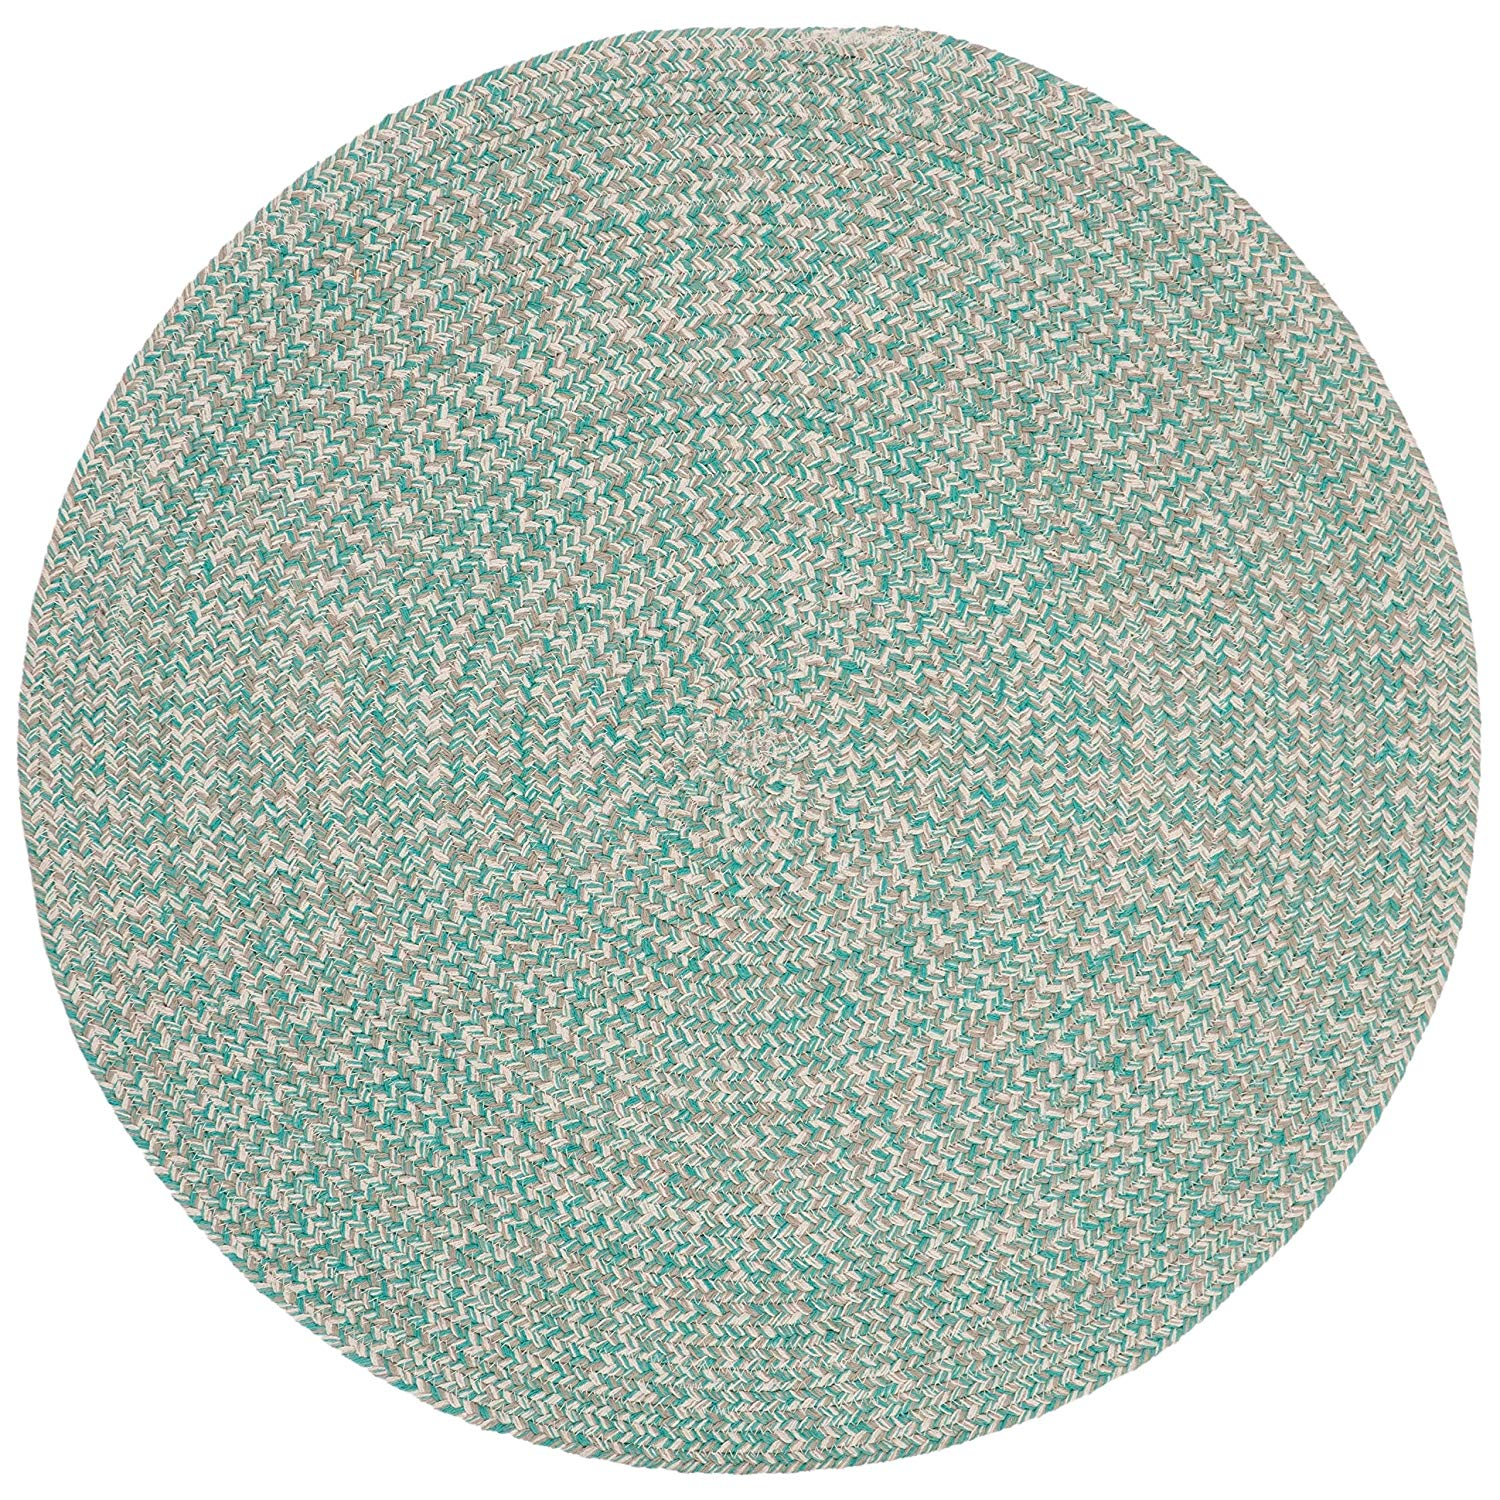 6ft Braided Circular Rug Teal Ivory Braid Weave Round Area Rug Light Turquoise Off White Indoor Carpet Country Farmhouse Theme Circle Floor Mat